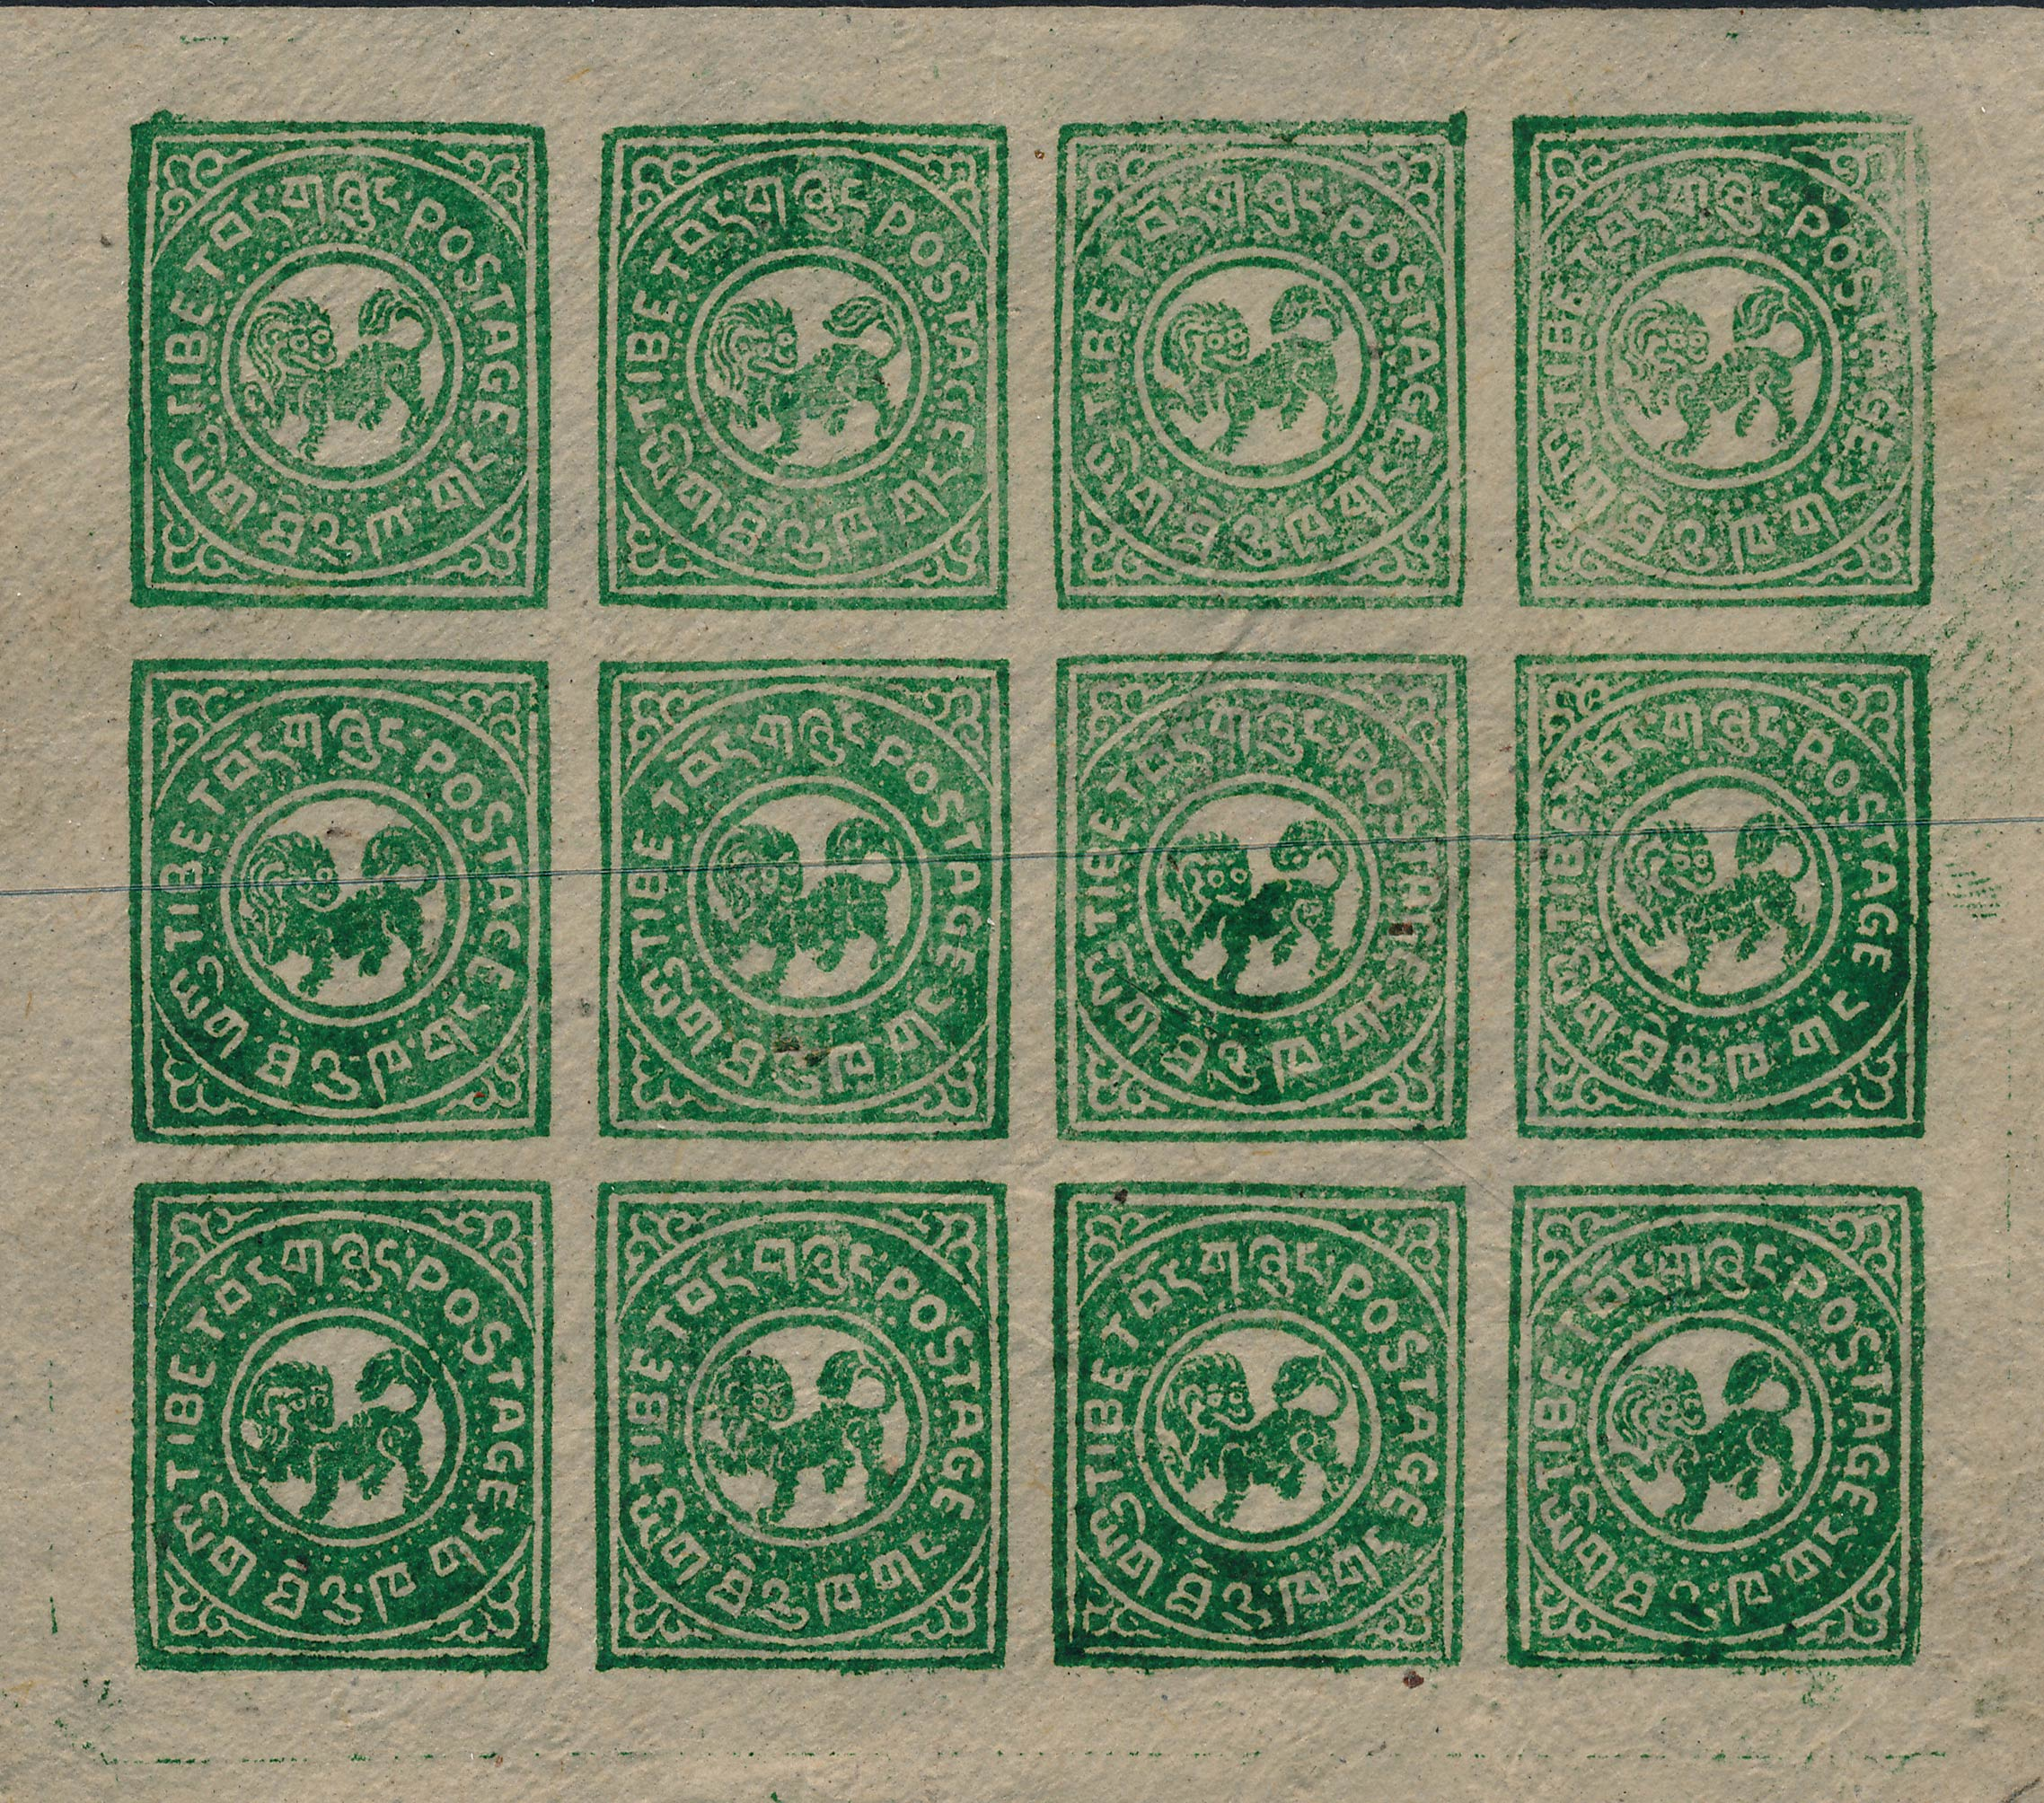 Tibet_1912_1-6tr_sheet_Genuine1